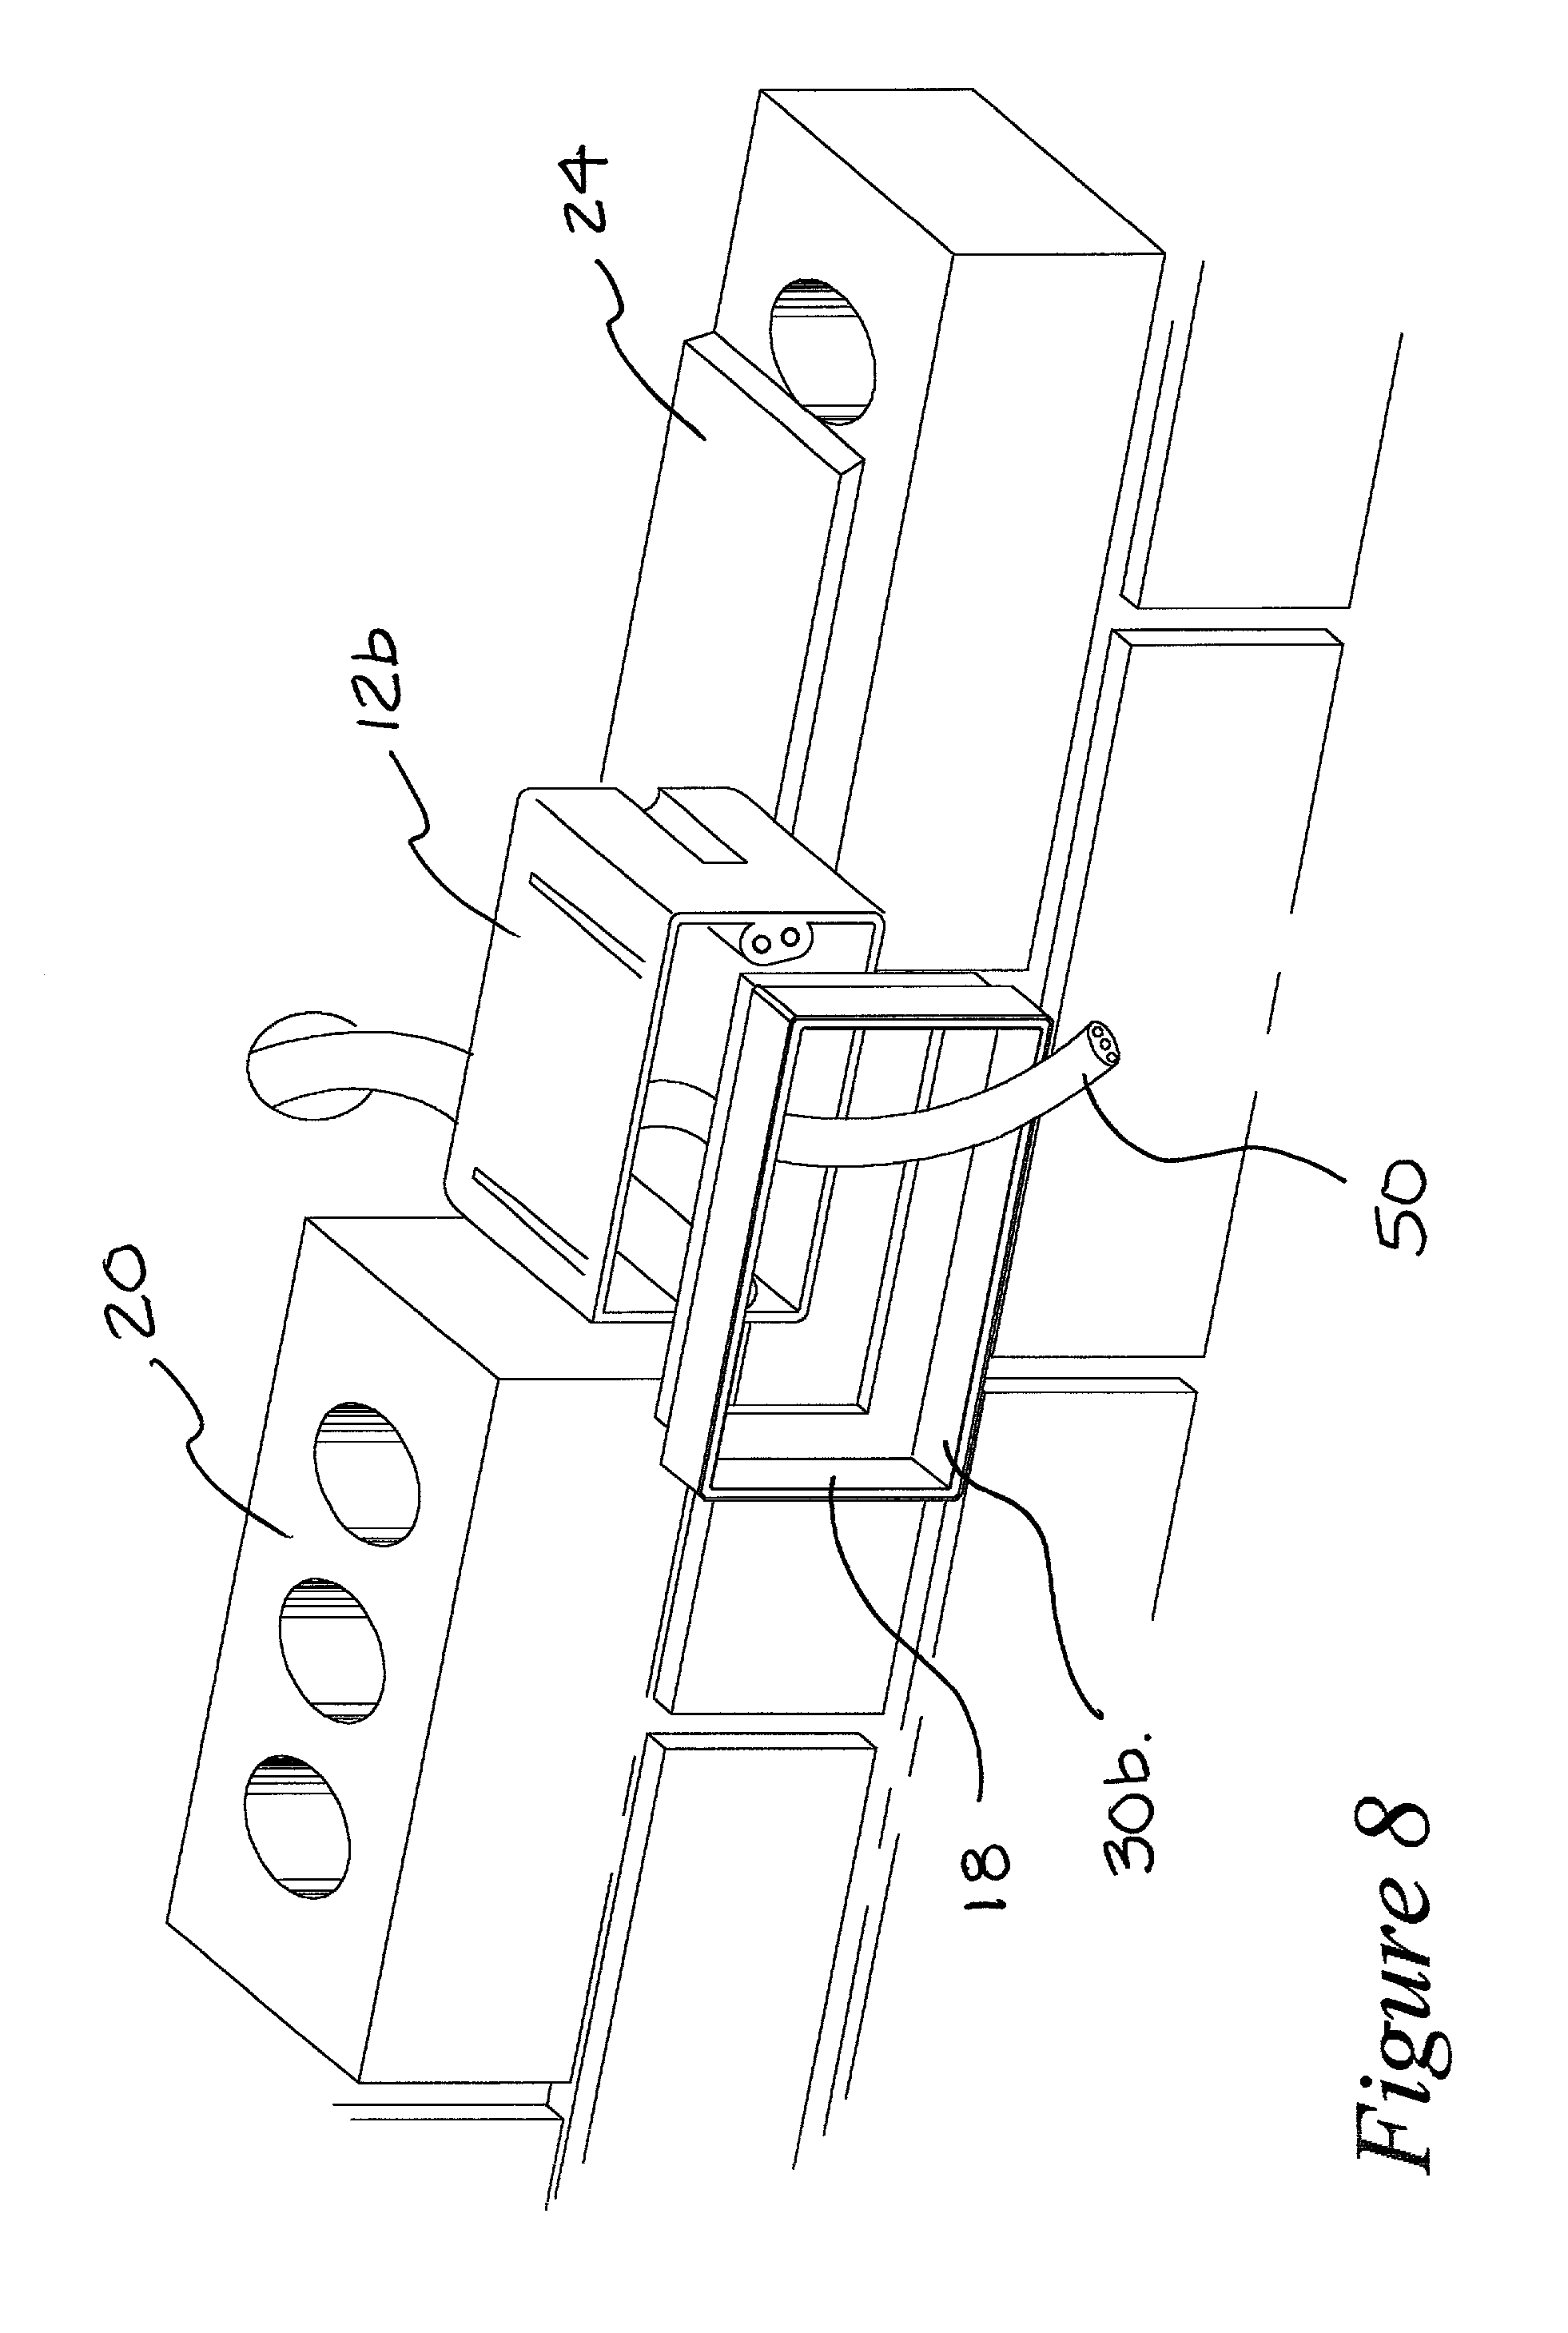 patent us20020125247 - electrical wiring box